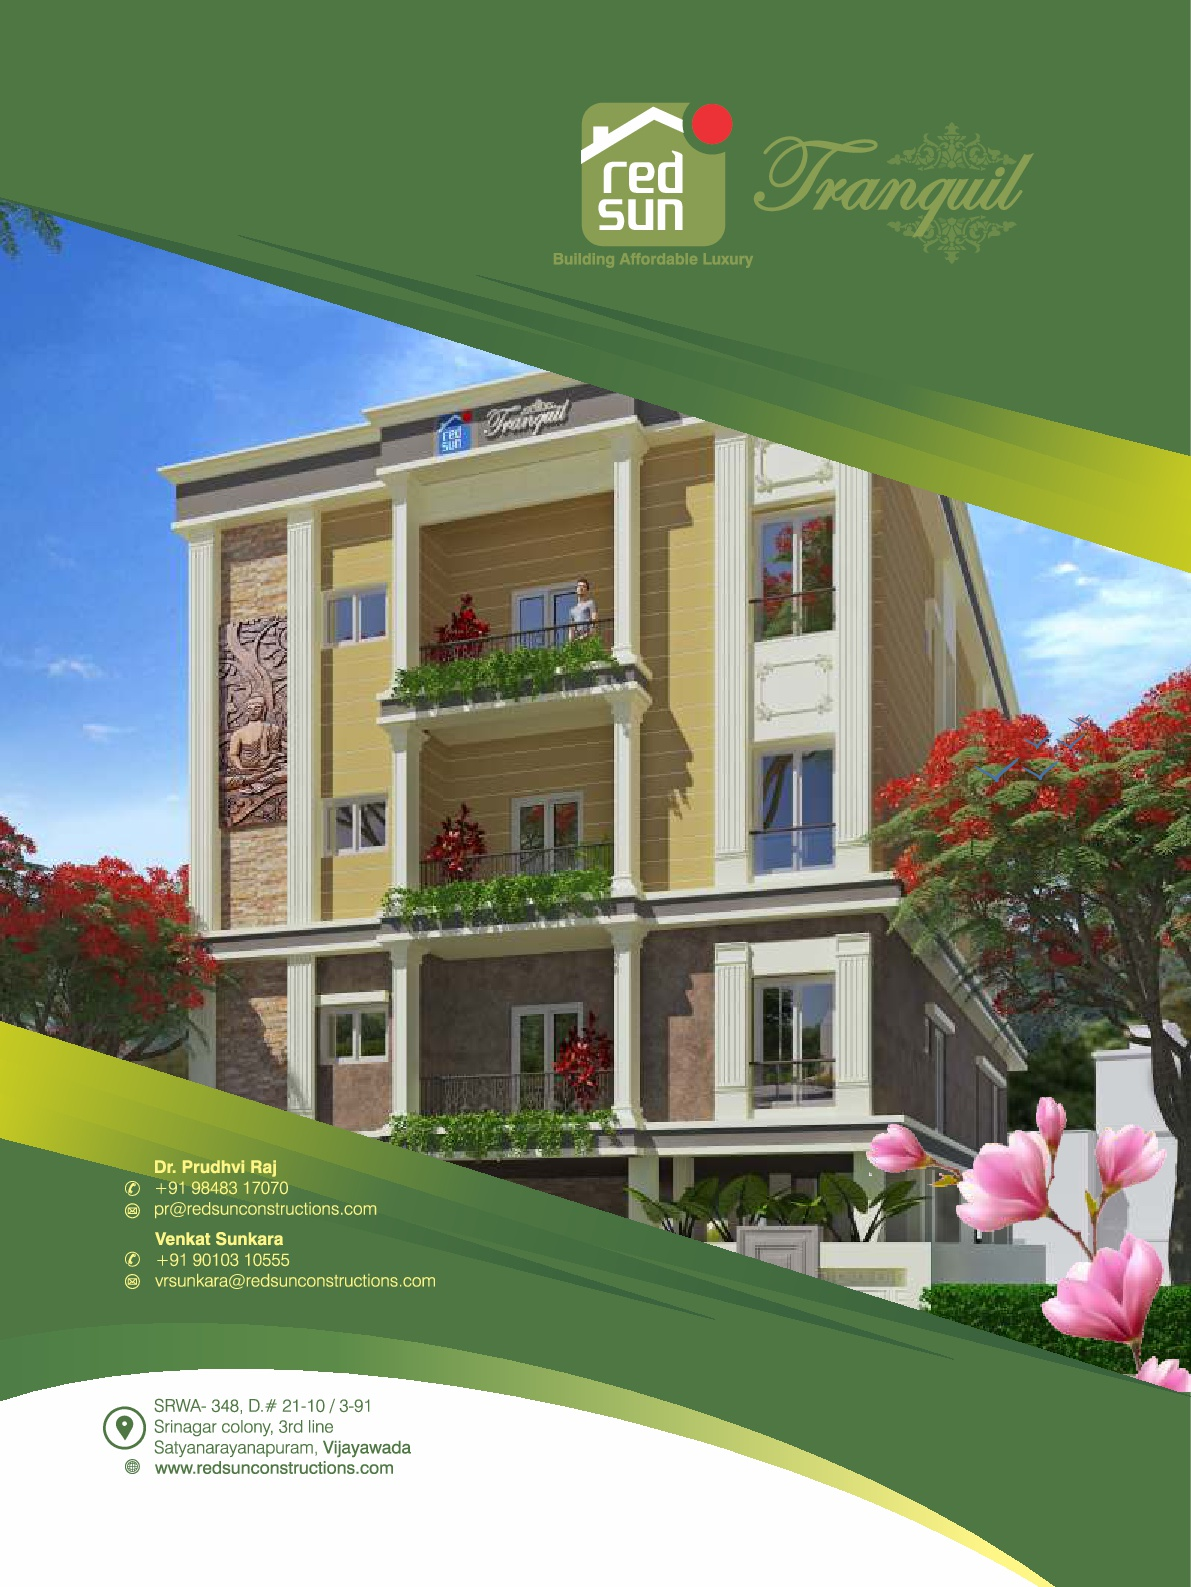 Luxurious Residential Property RedSun Tranquil in Srinagar Colony – Vijayawada